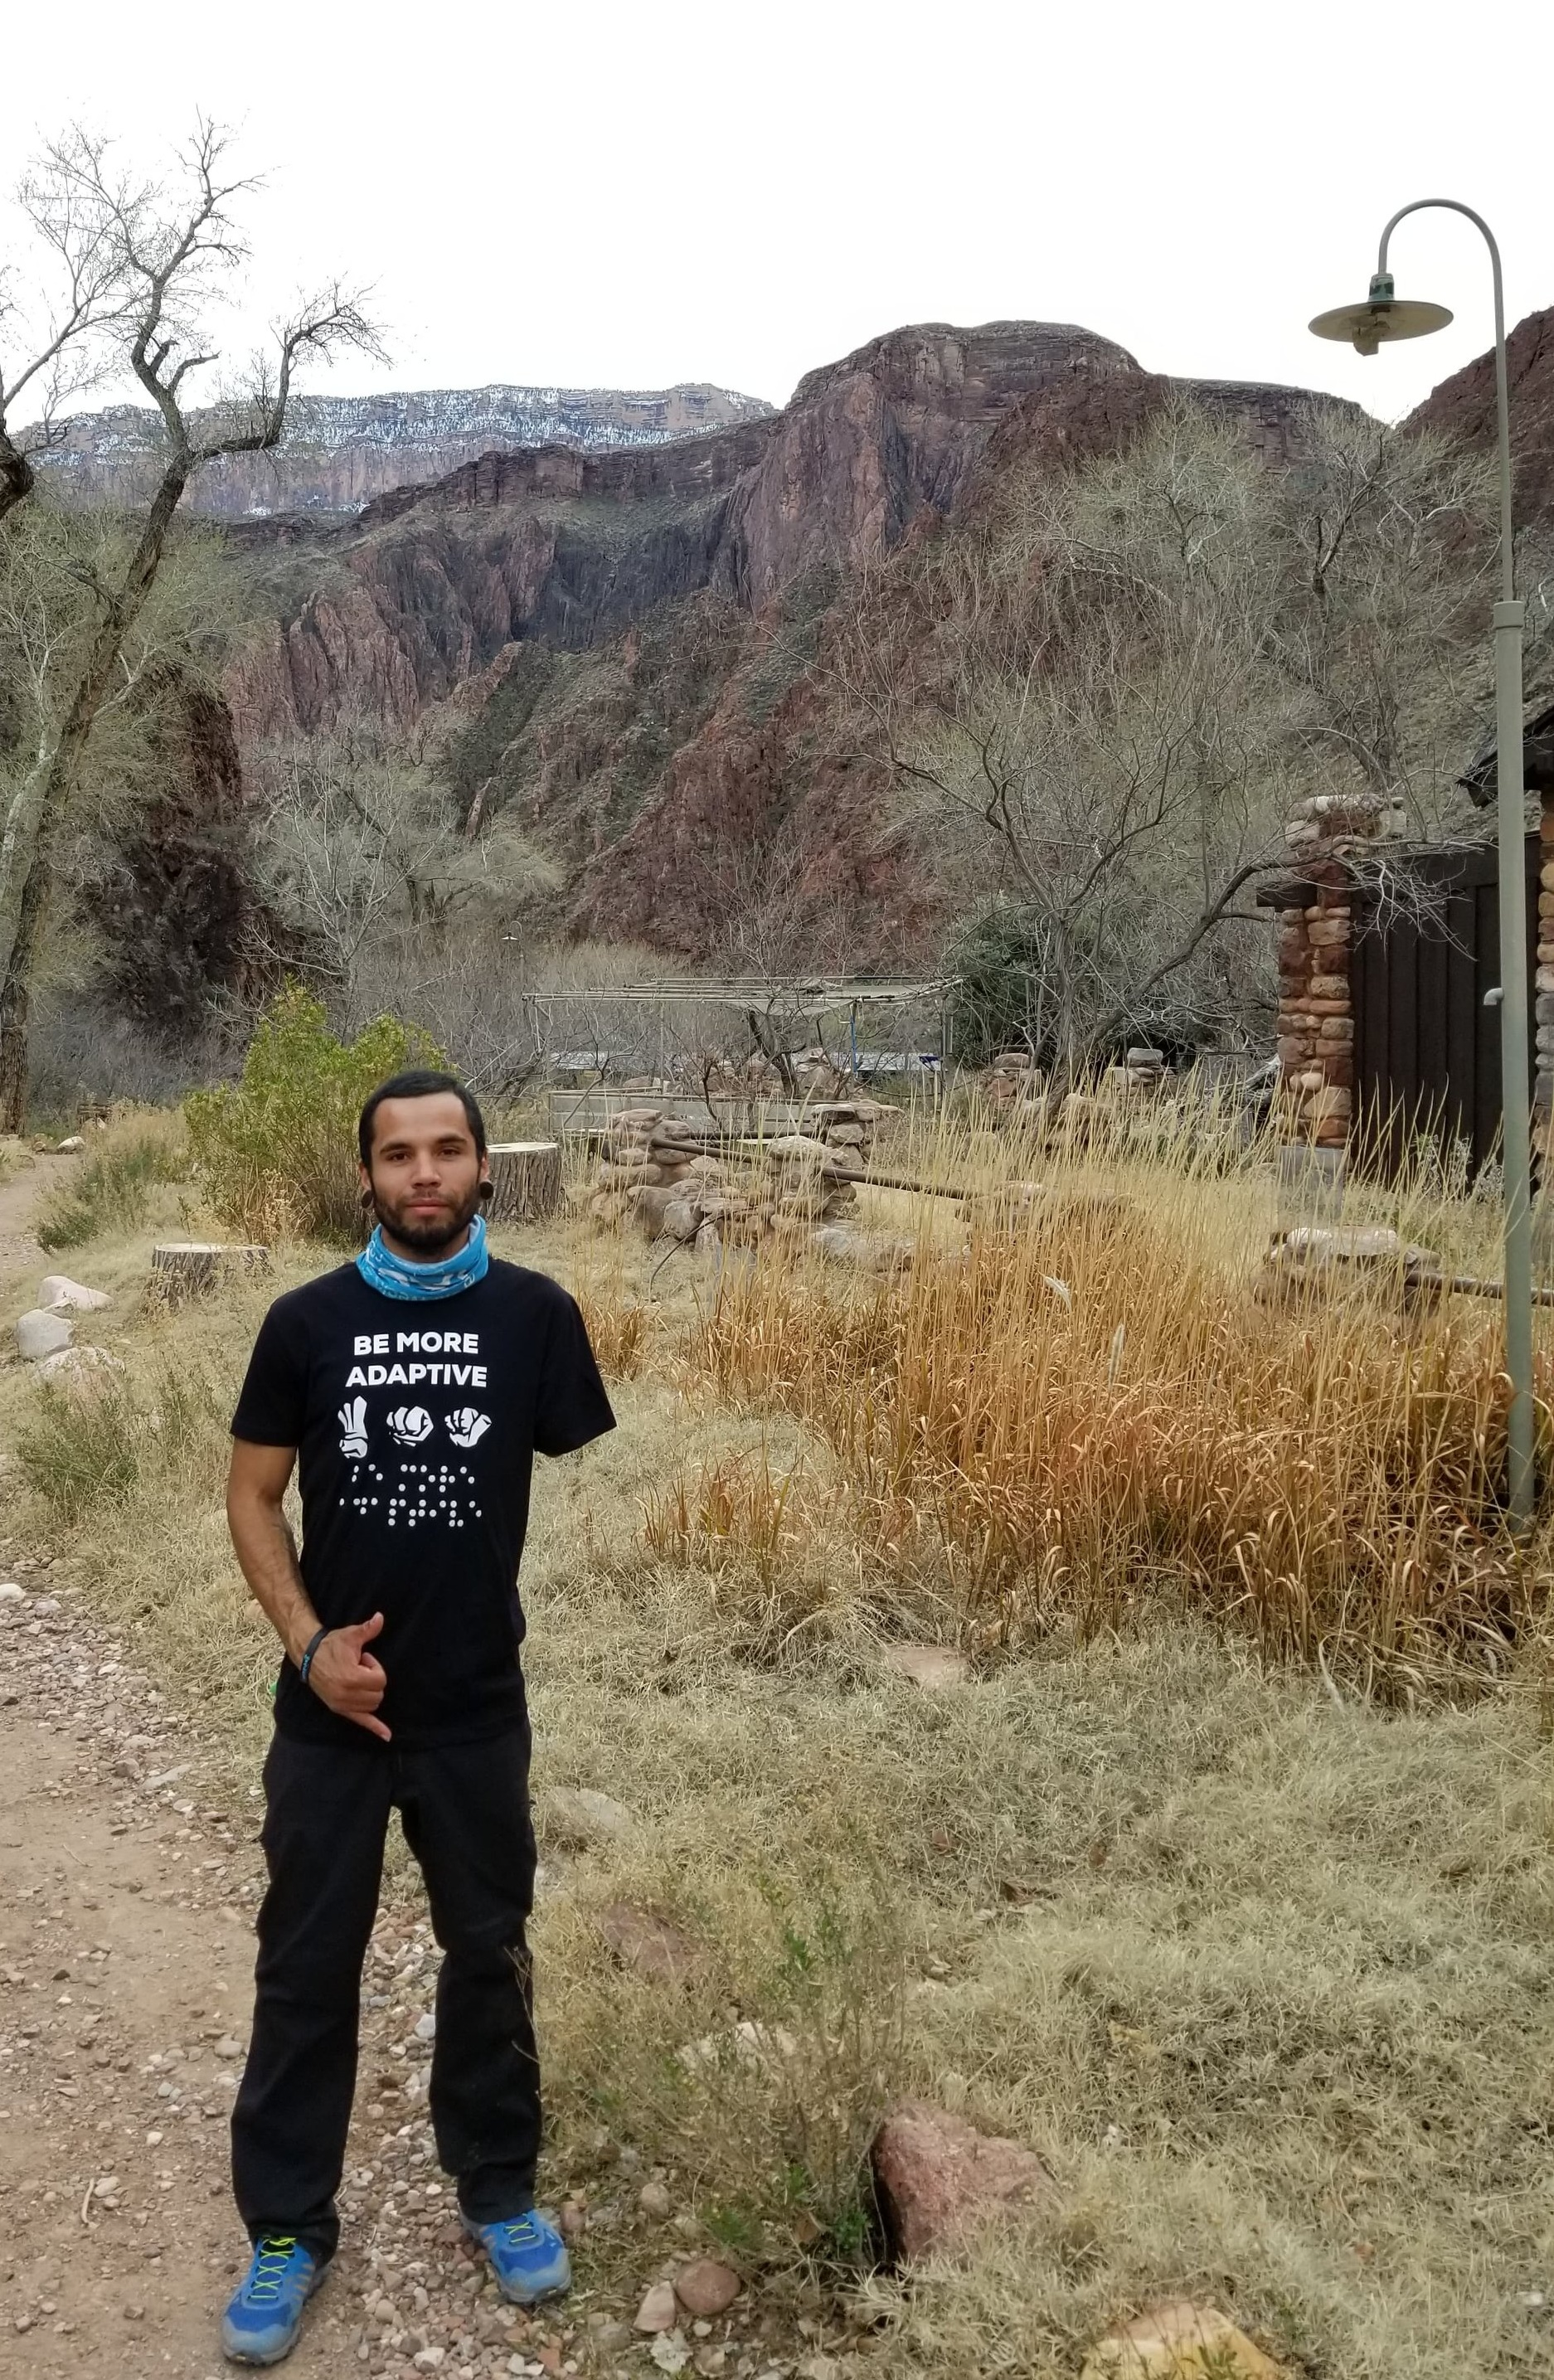 Jeremy Ogle is wearing a Be More Adaptive shirt while he hikes in the Grand Canyon.